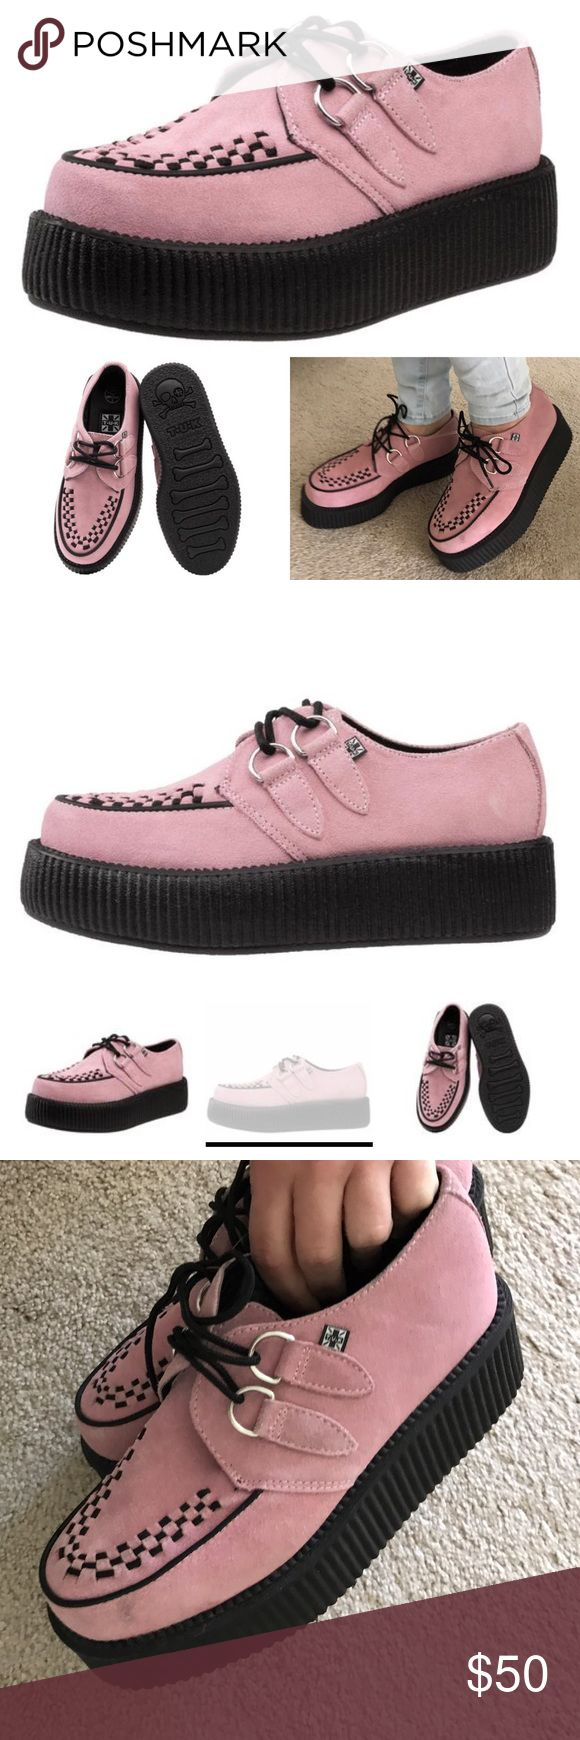 New tuk baby pink suede creepers platform 8 New without tag tuk creeper platform shoes size 6 men's size 8 women's NO TRADES Urban Outfitters Shoes